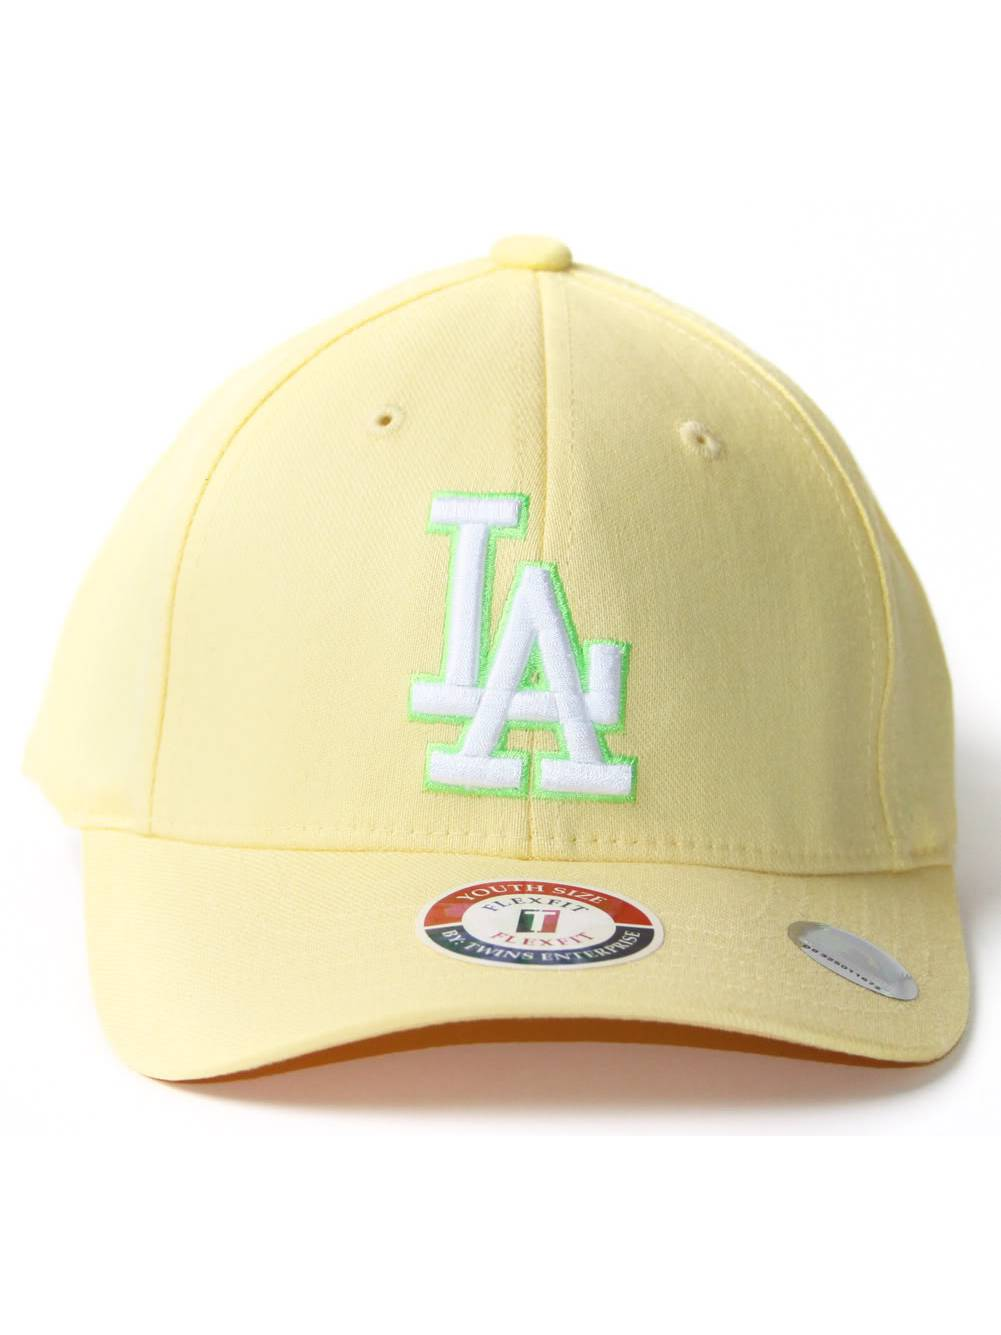 Light Yellow Youth Size Flex Fit Hat - Los Angeles Dodgers 52109781519